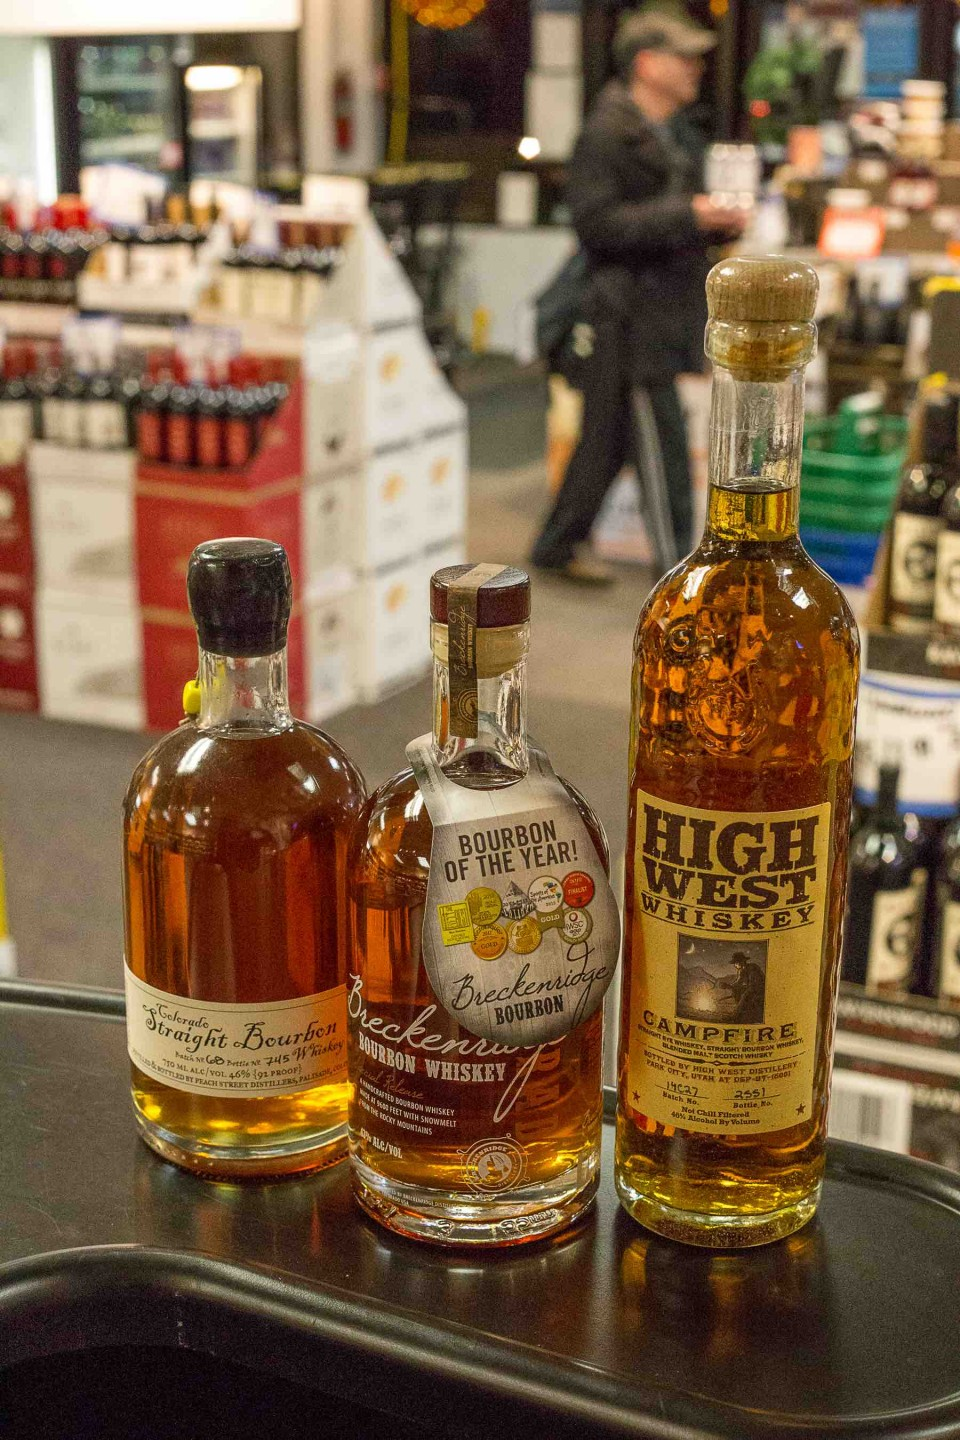 West Vail Liquor Mart sells a lot of whisk(e)y, especially Fireball cinnamon-flavored whisky and labels from producers in Colorado and other Western states.